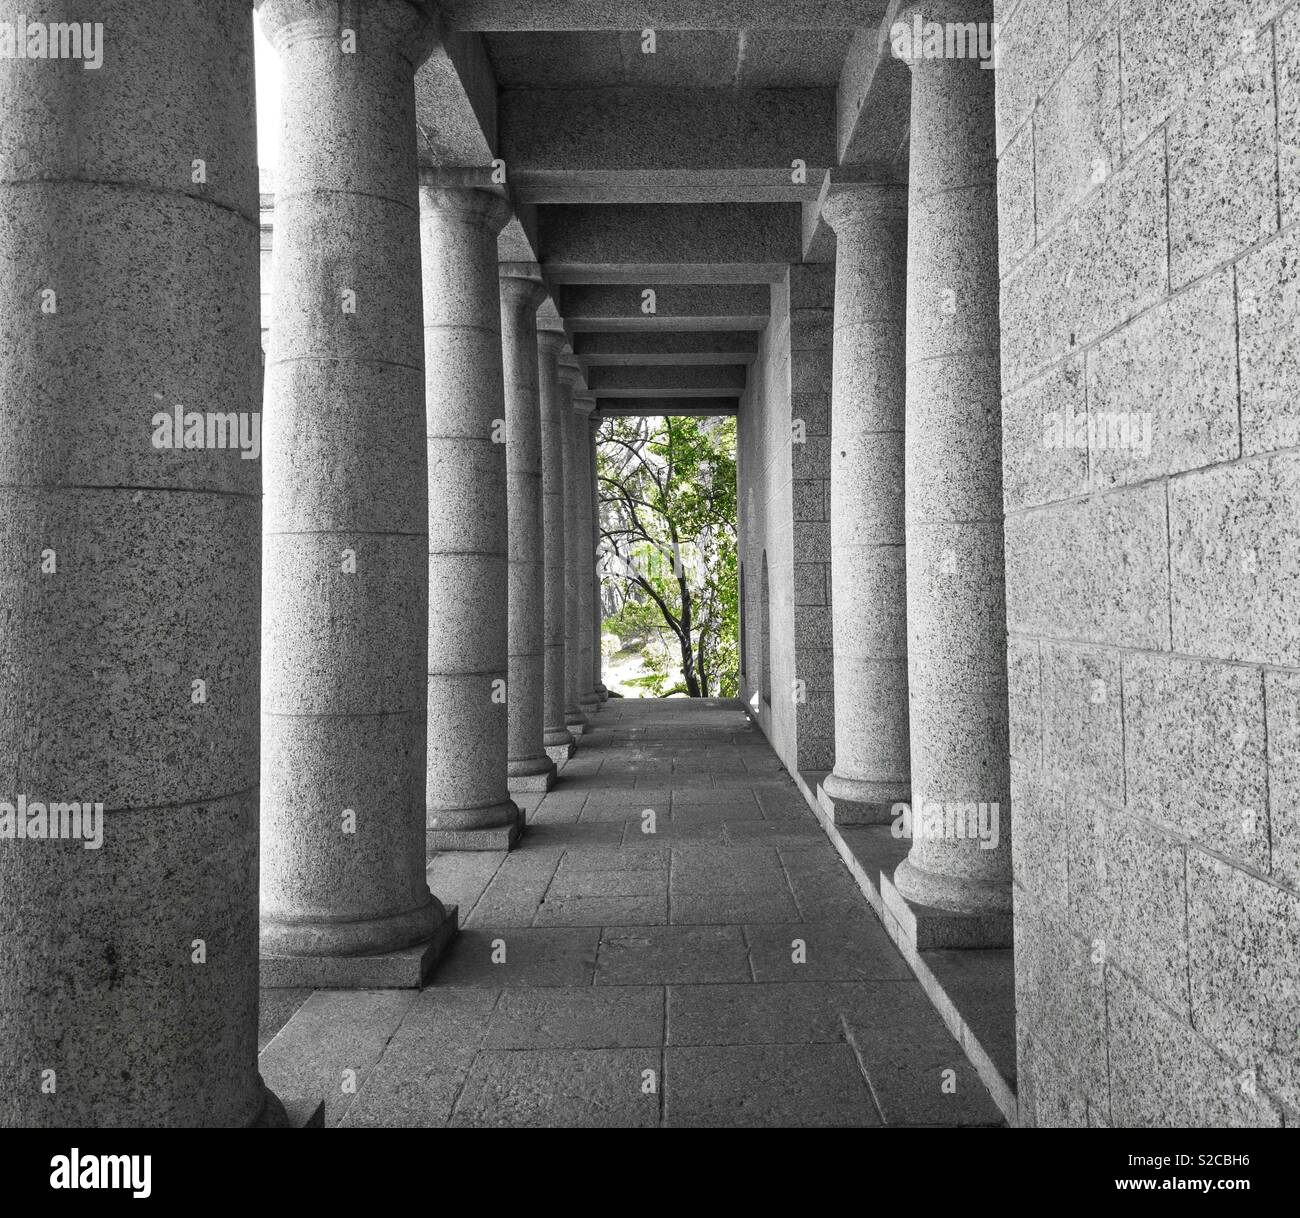 rhodes memorial, cape town, south africa - Stock Image